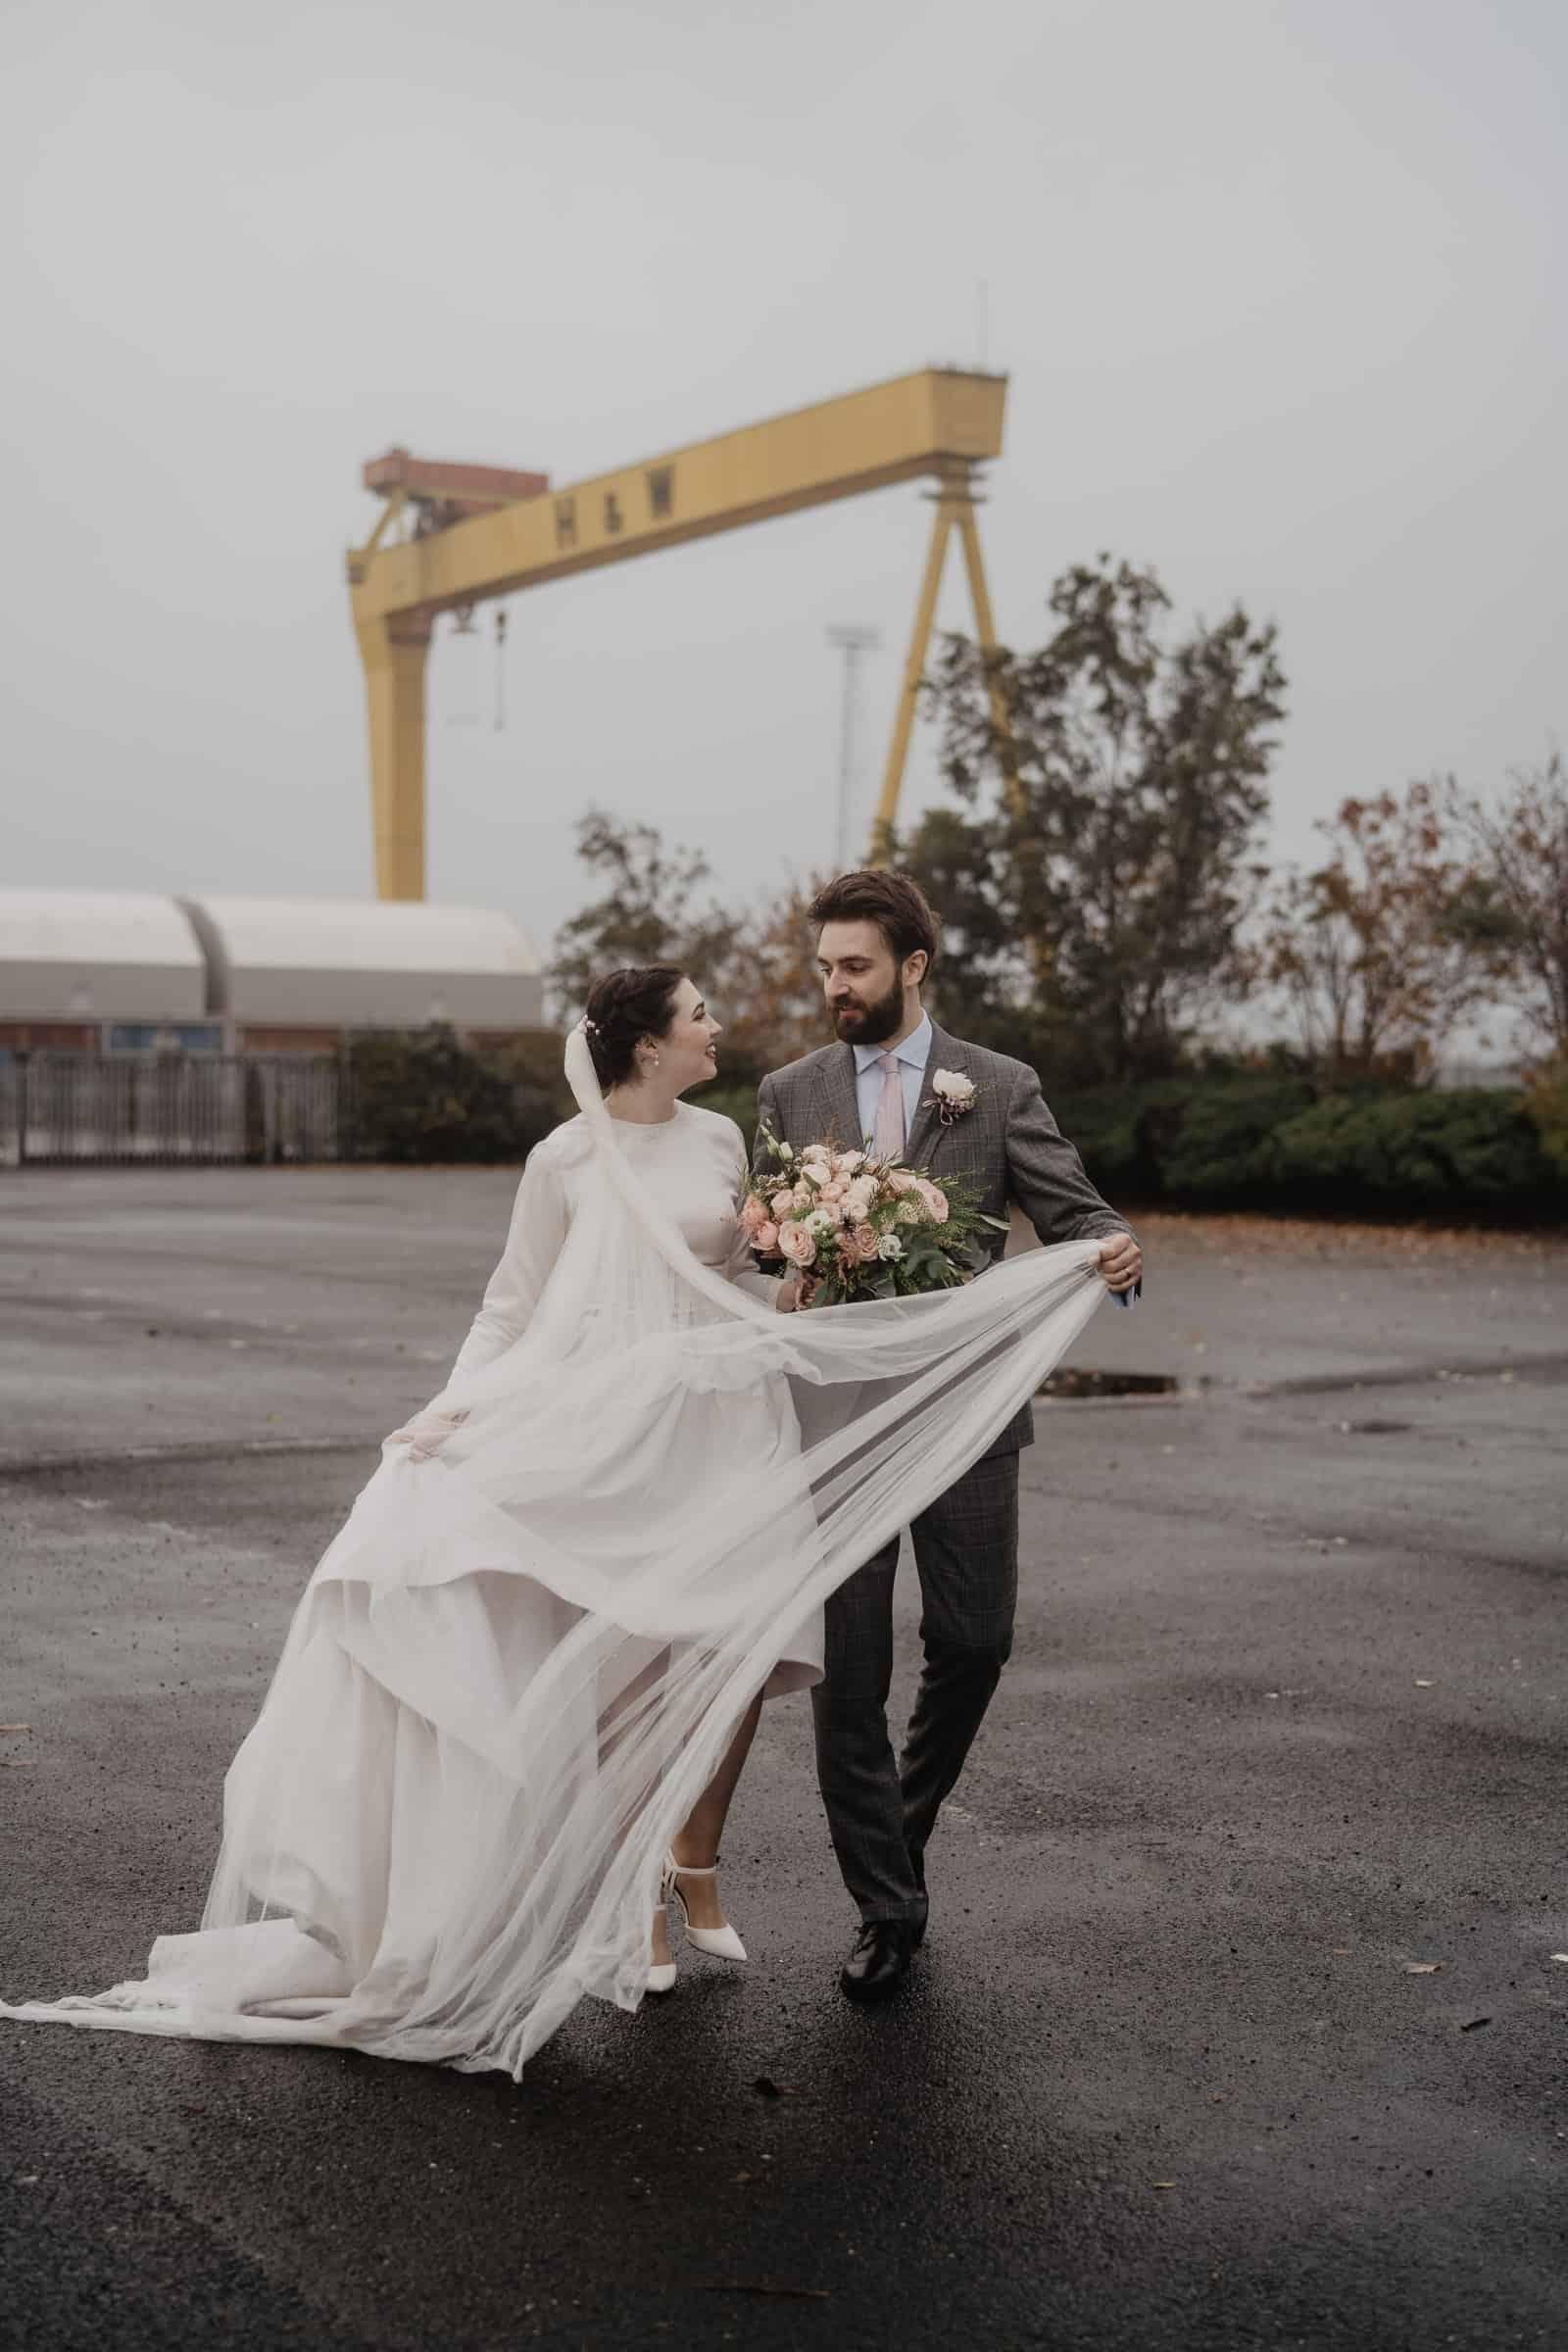 Bride and Groom outside Harland and wolf Cranes Belfast